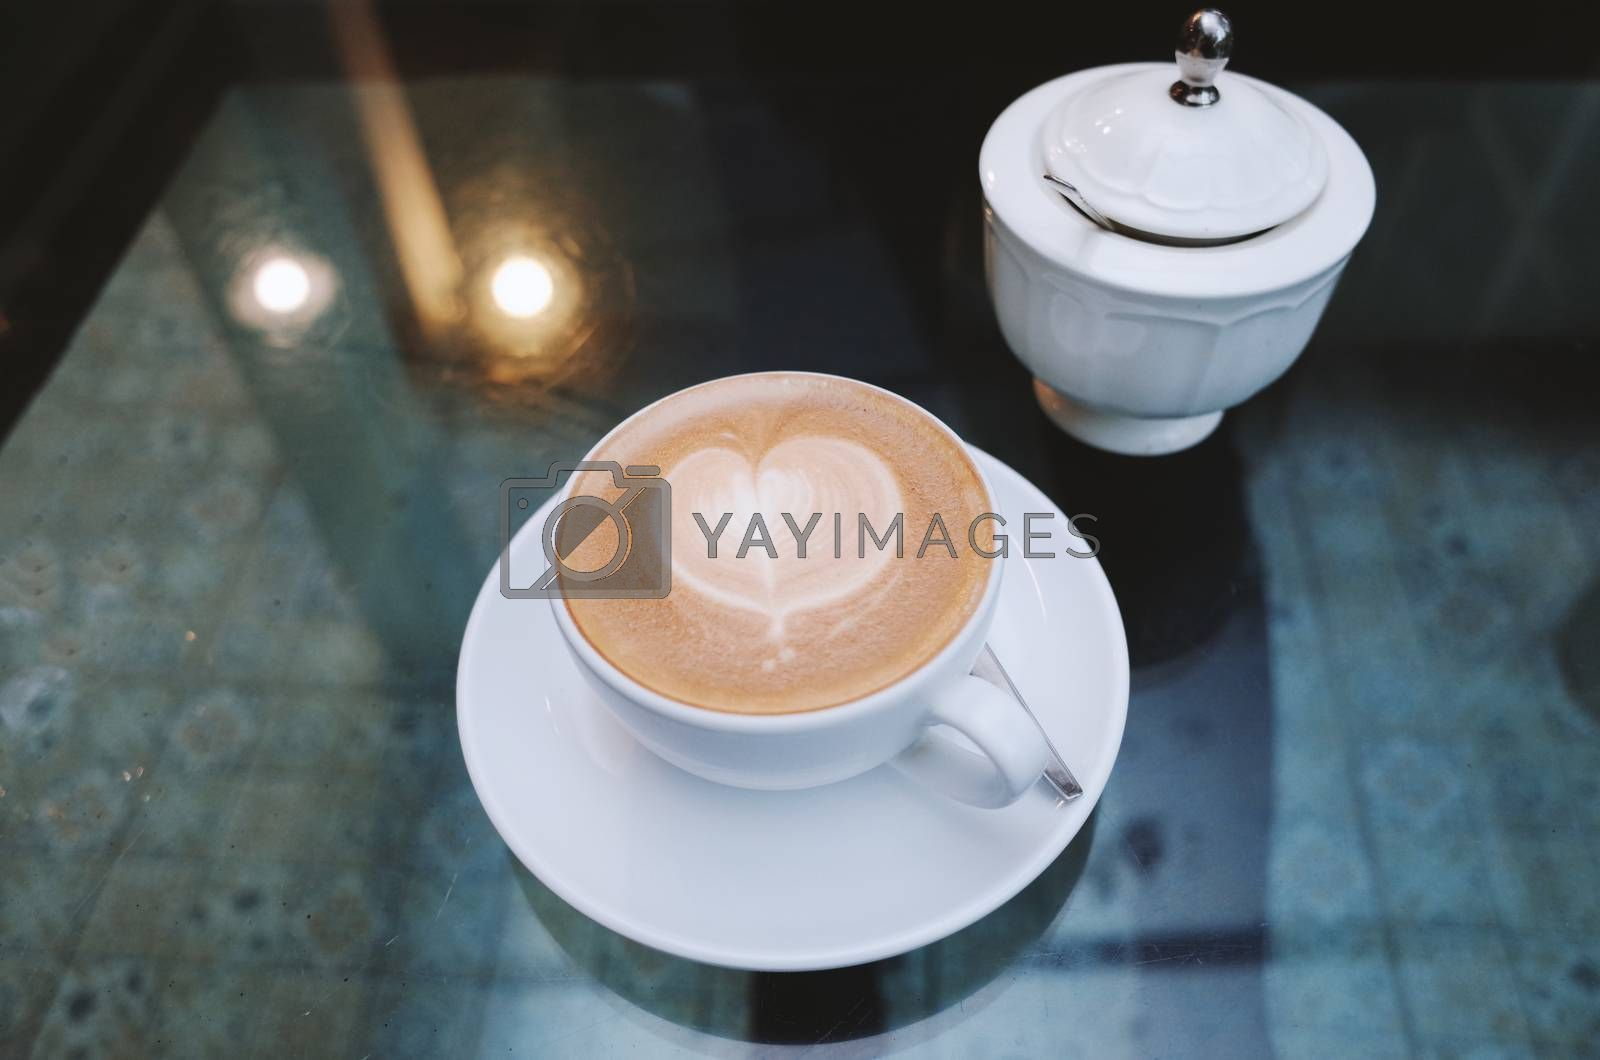 Morning Time for a hot coffee with friend.